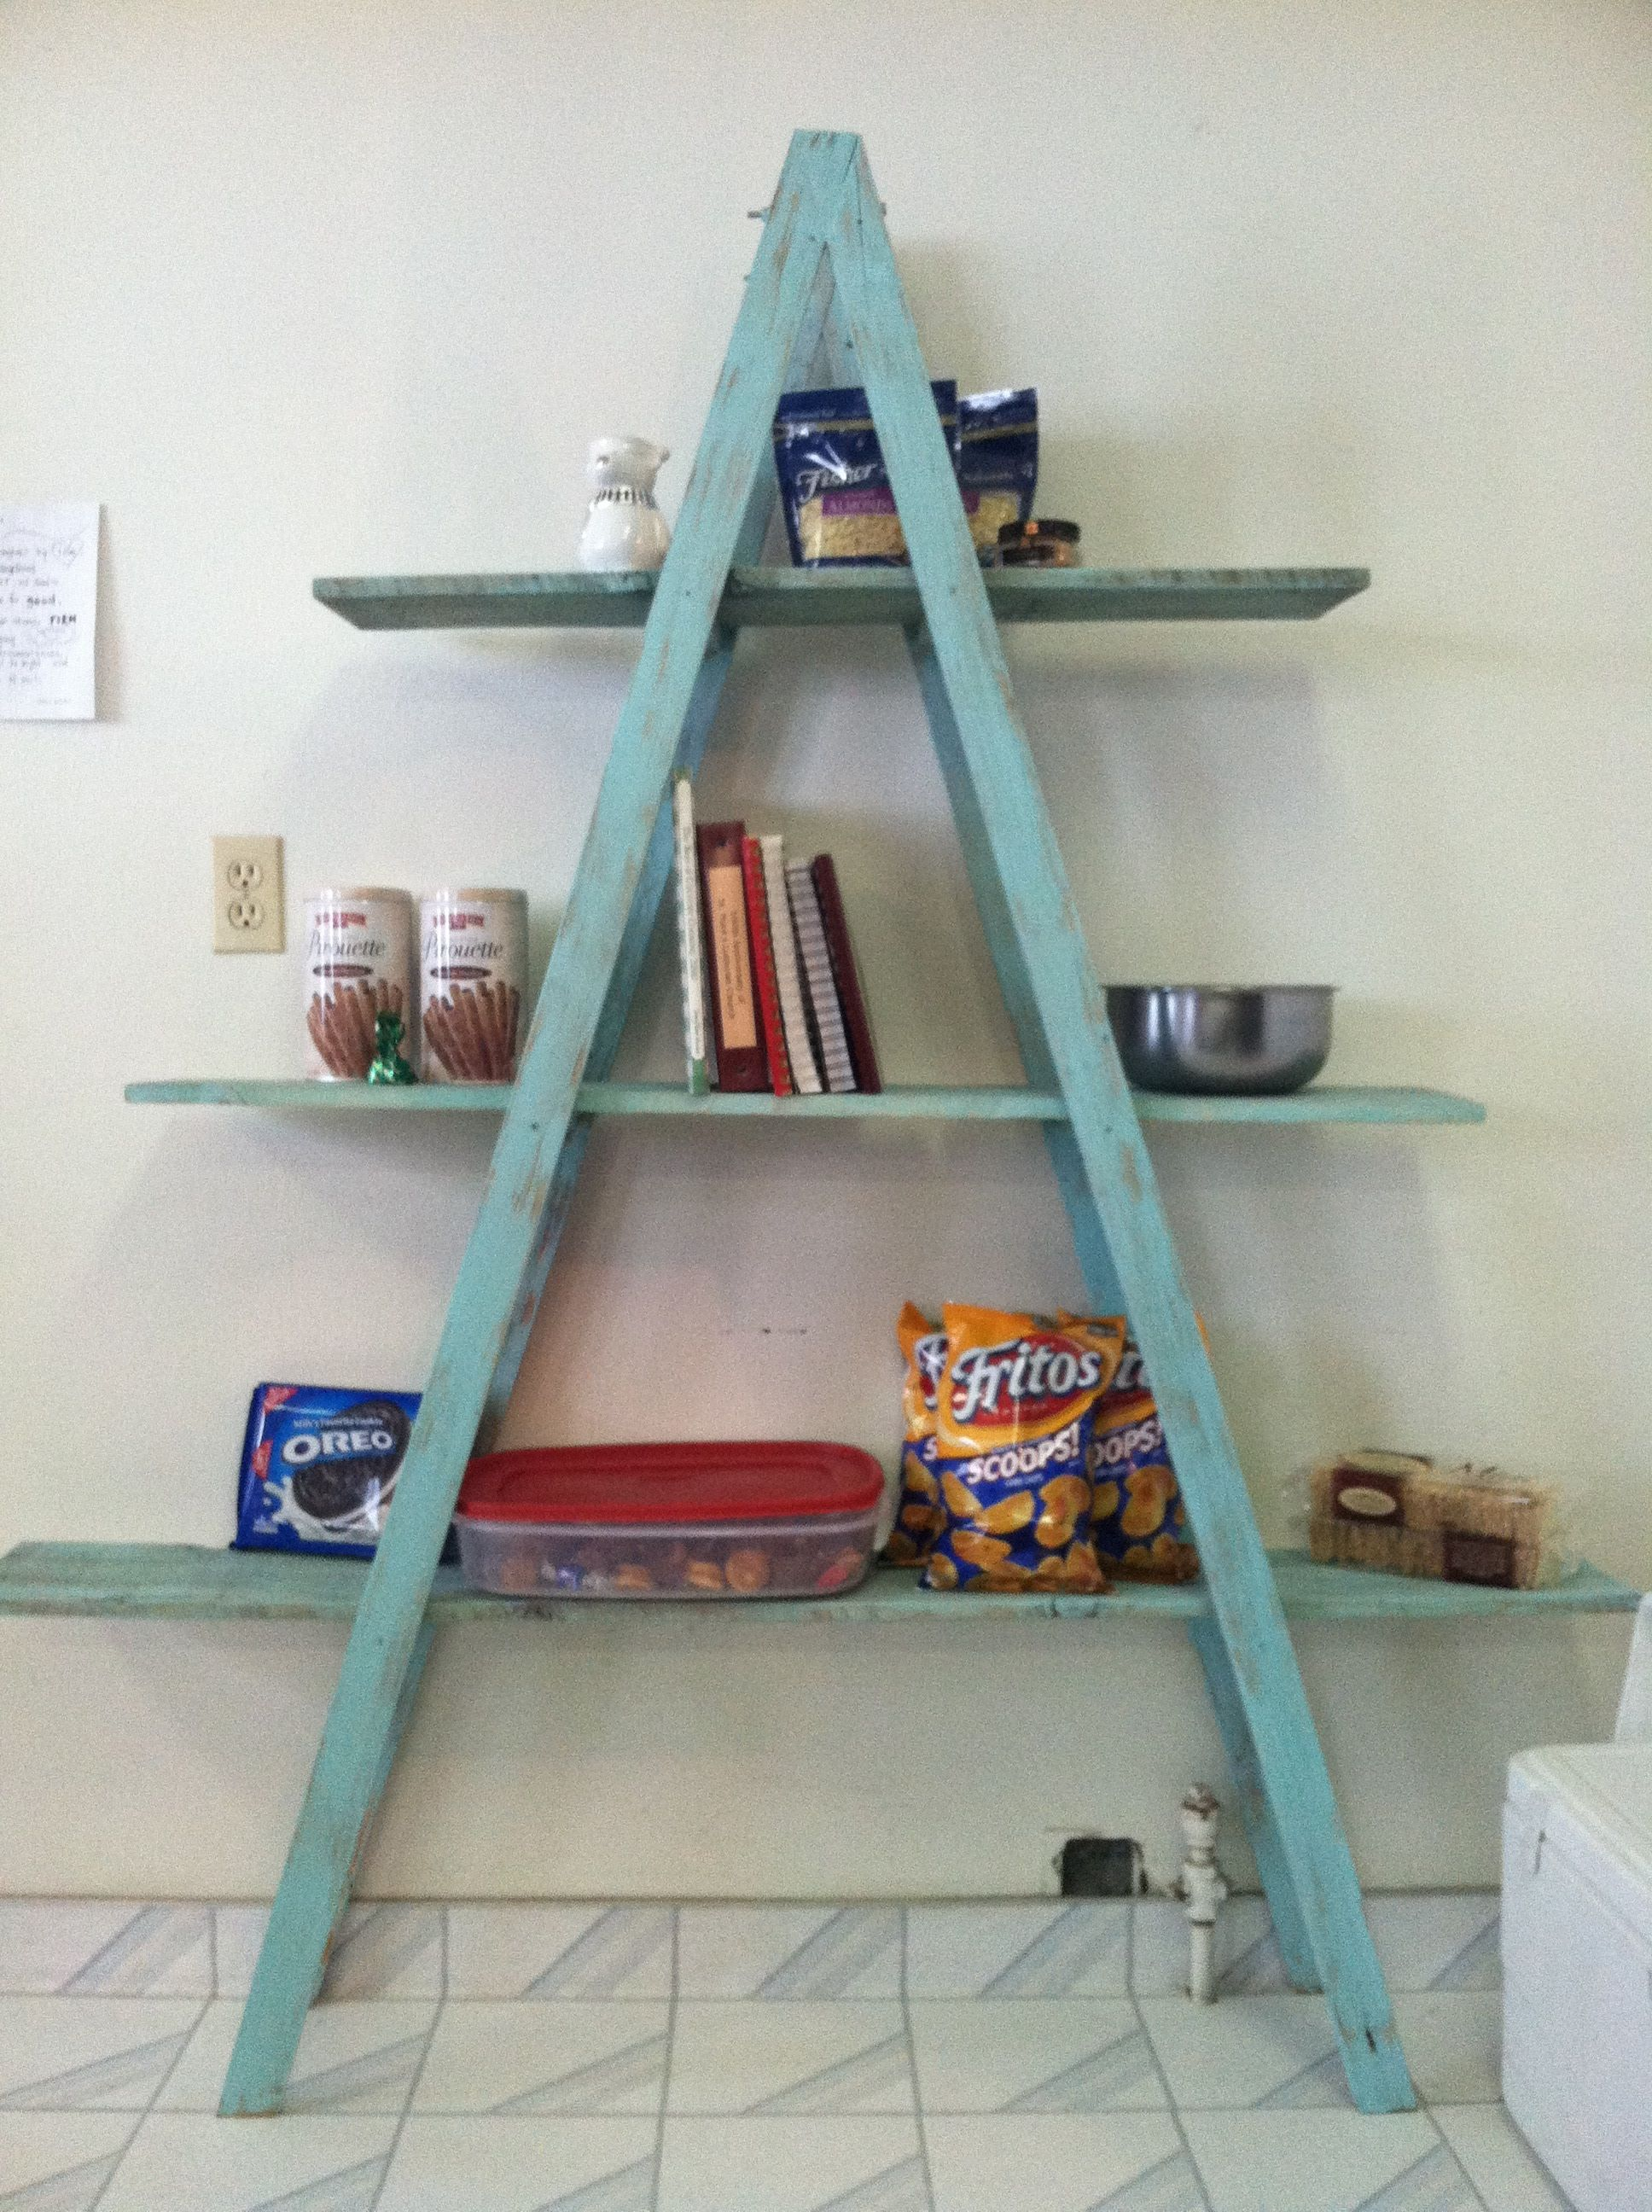 Make A Shelf Out Of A Ladder Could Turn 2 Ladders Sideways Connect With Longer Shelves Would Be Cool Ladder Shelf Decor Bookshelves Diy Wooden Ladder Shelf